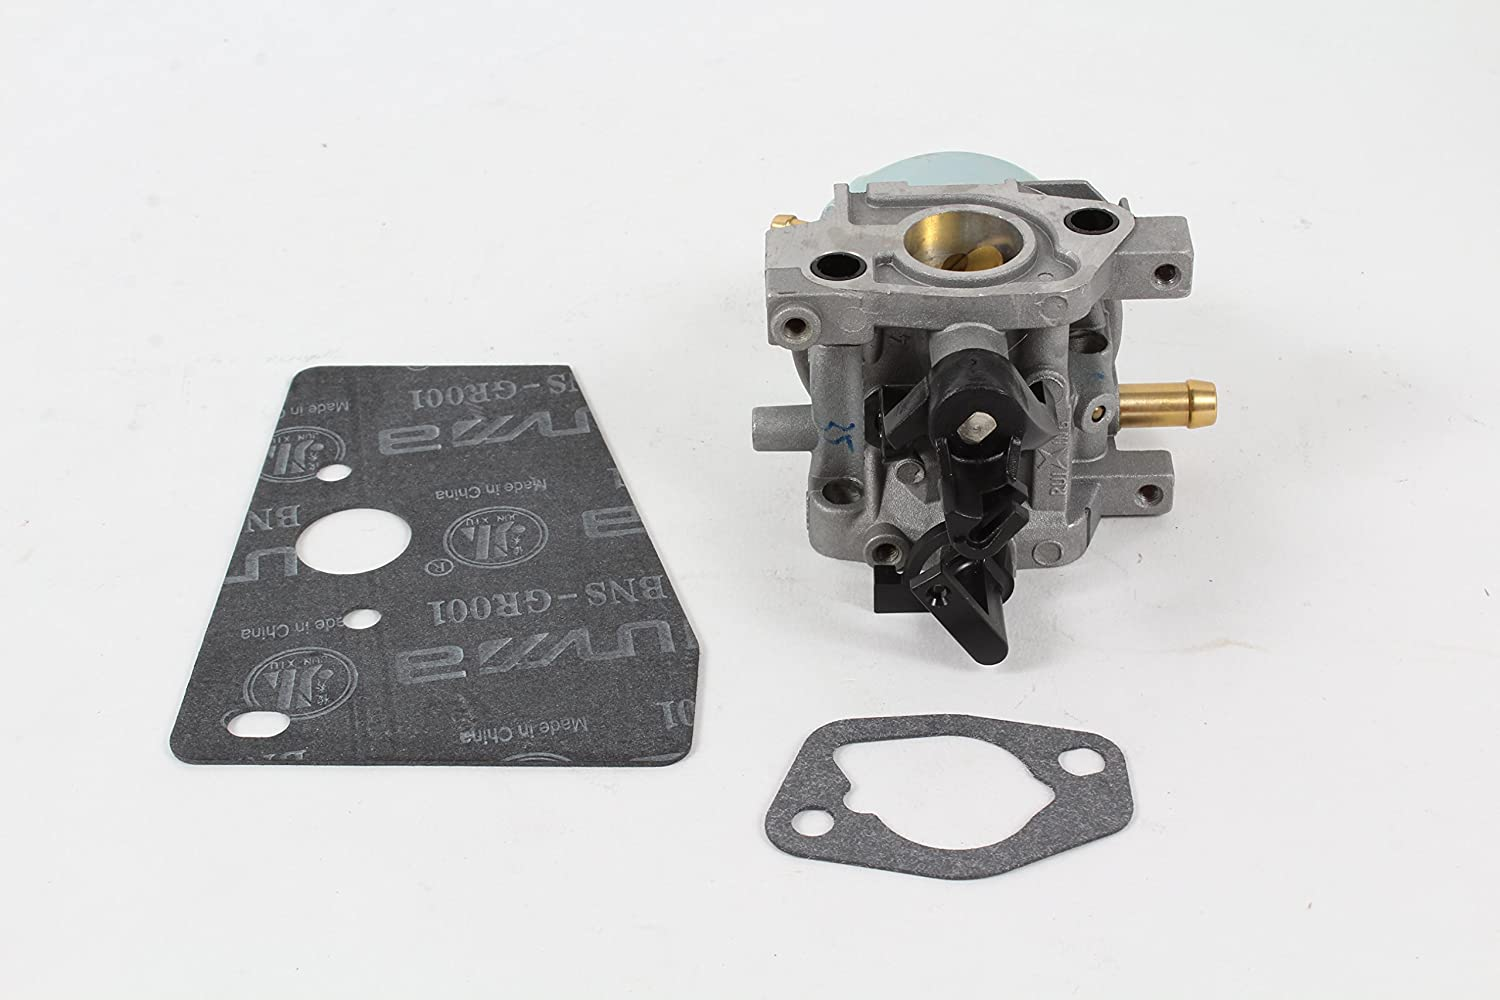 Kohler 14-853-57-S Lawn & Garden Equipment Engine Carburetor Genuine Original Equipment Manufacturer (OEM) Part